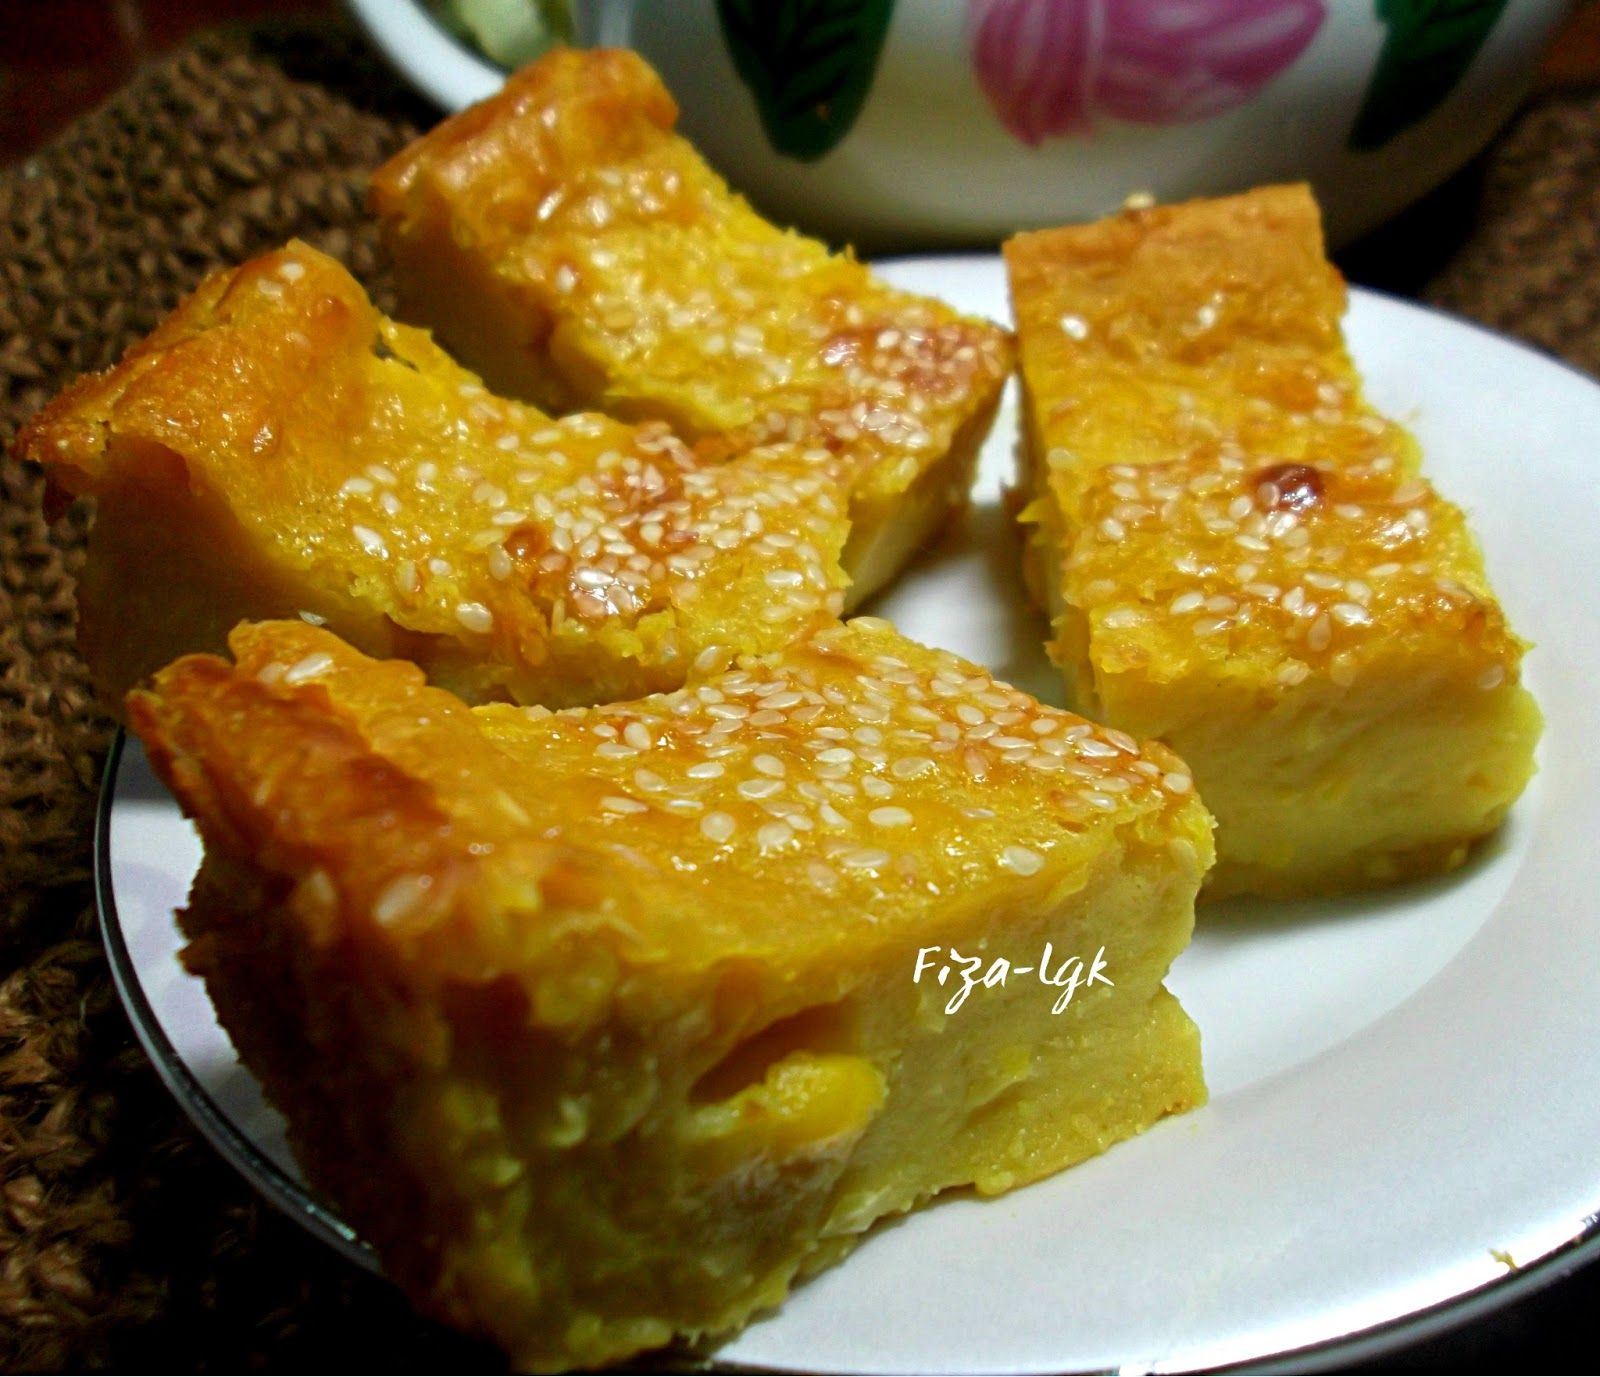 Pin by AngeLica Tan on Pastries (With images) Malay food